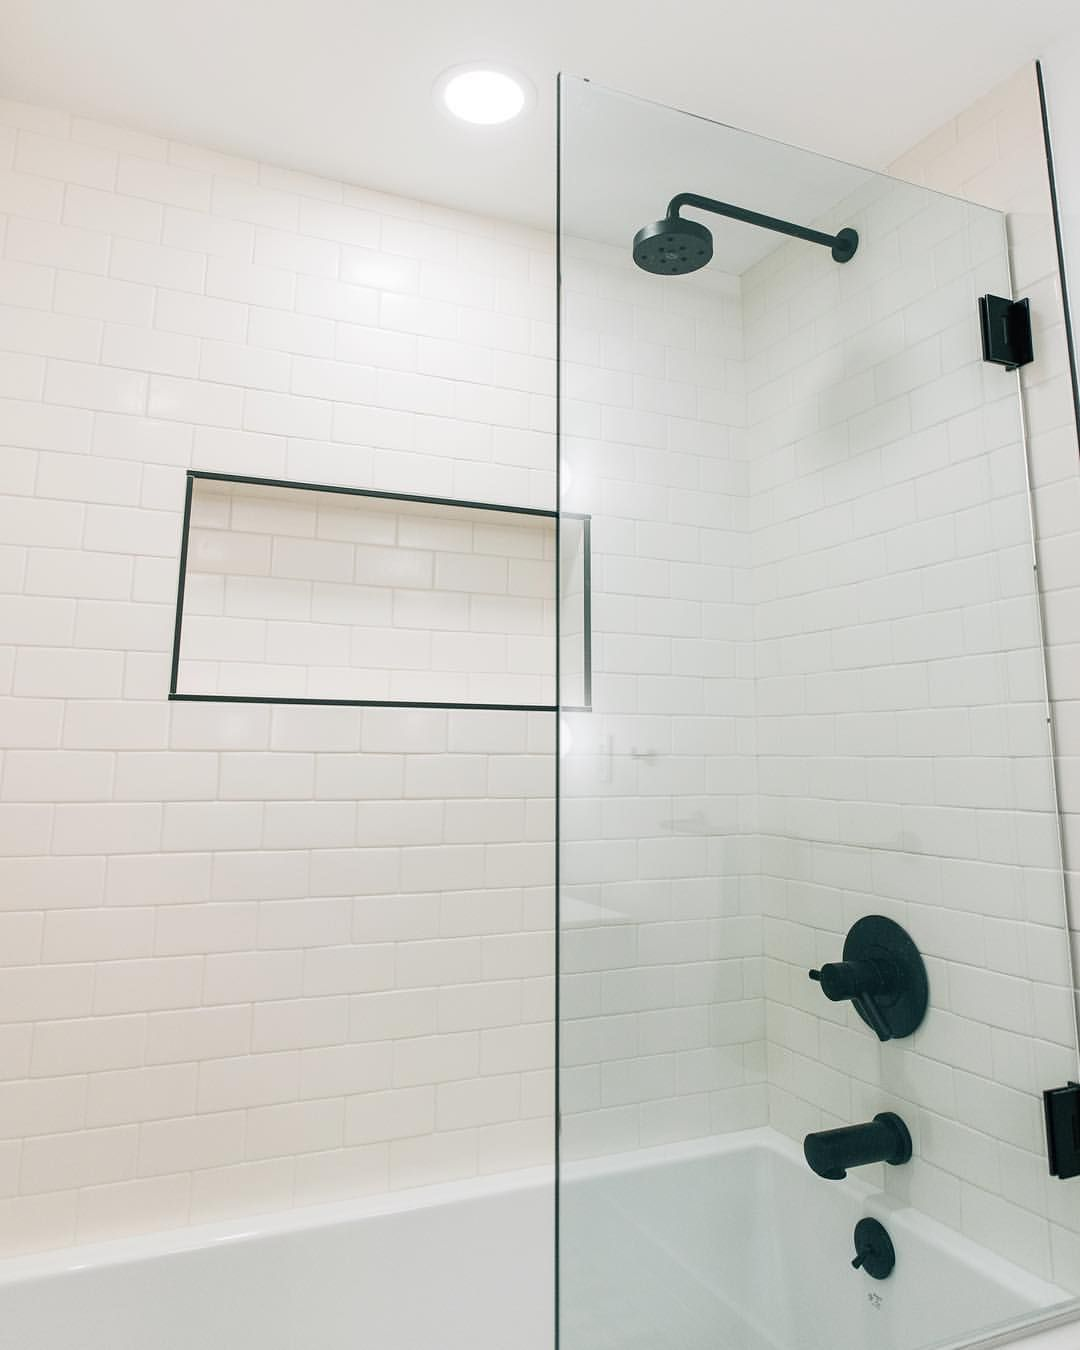 Pin By Nick Smith On Upstairs Bathroom In 2019 Bathroom